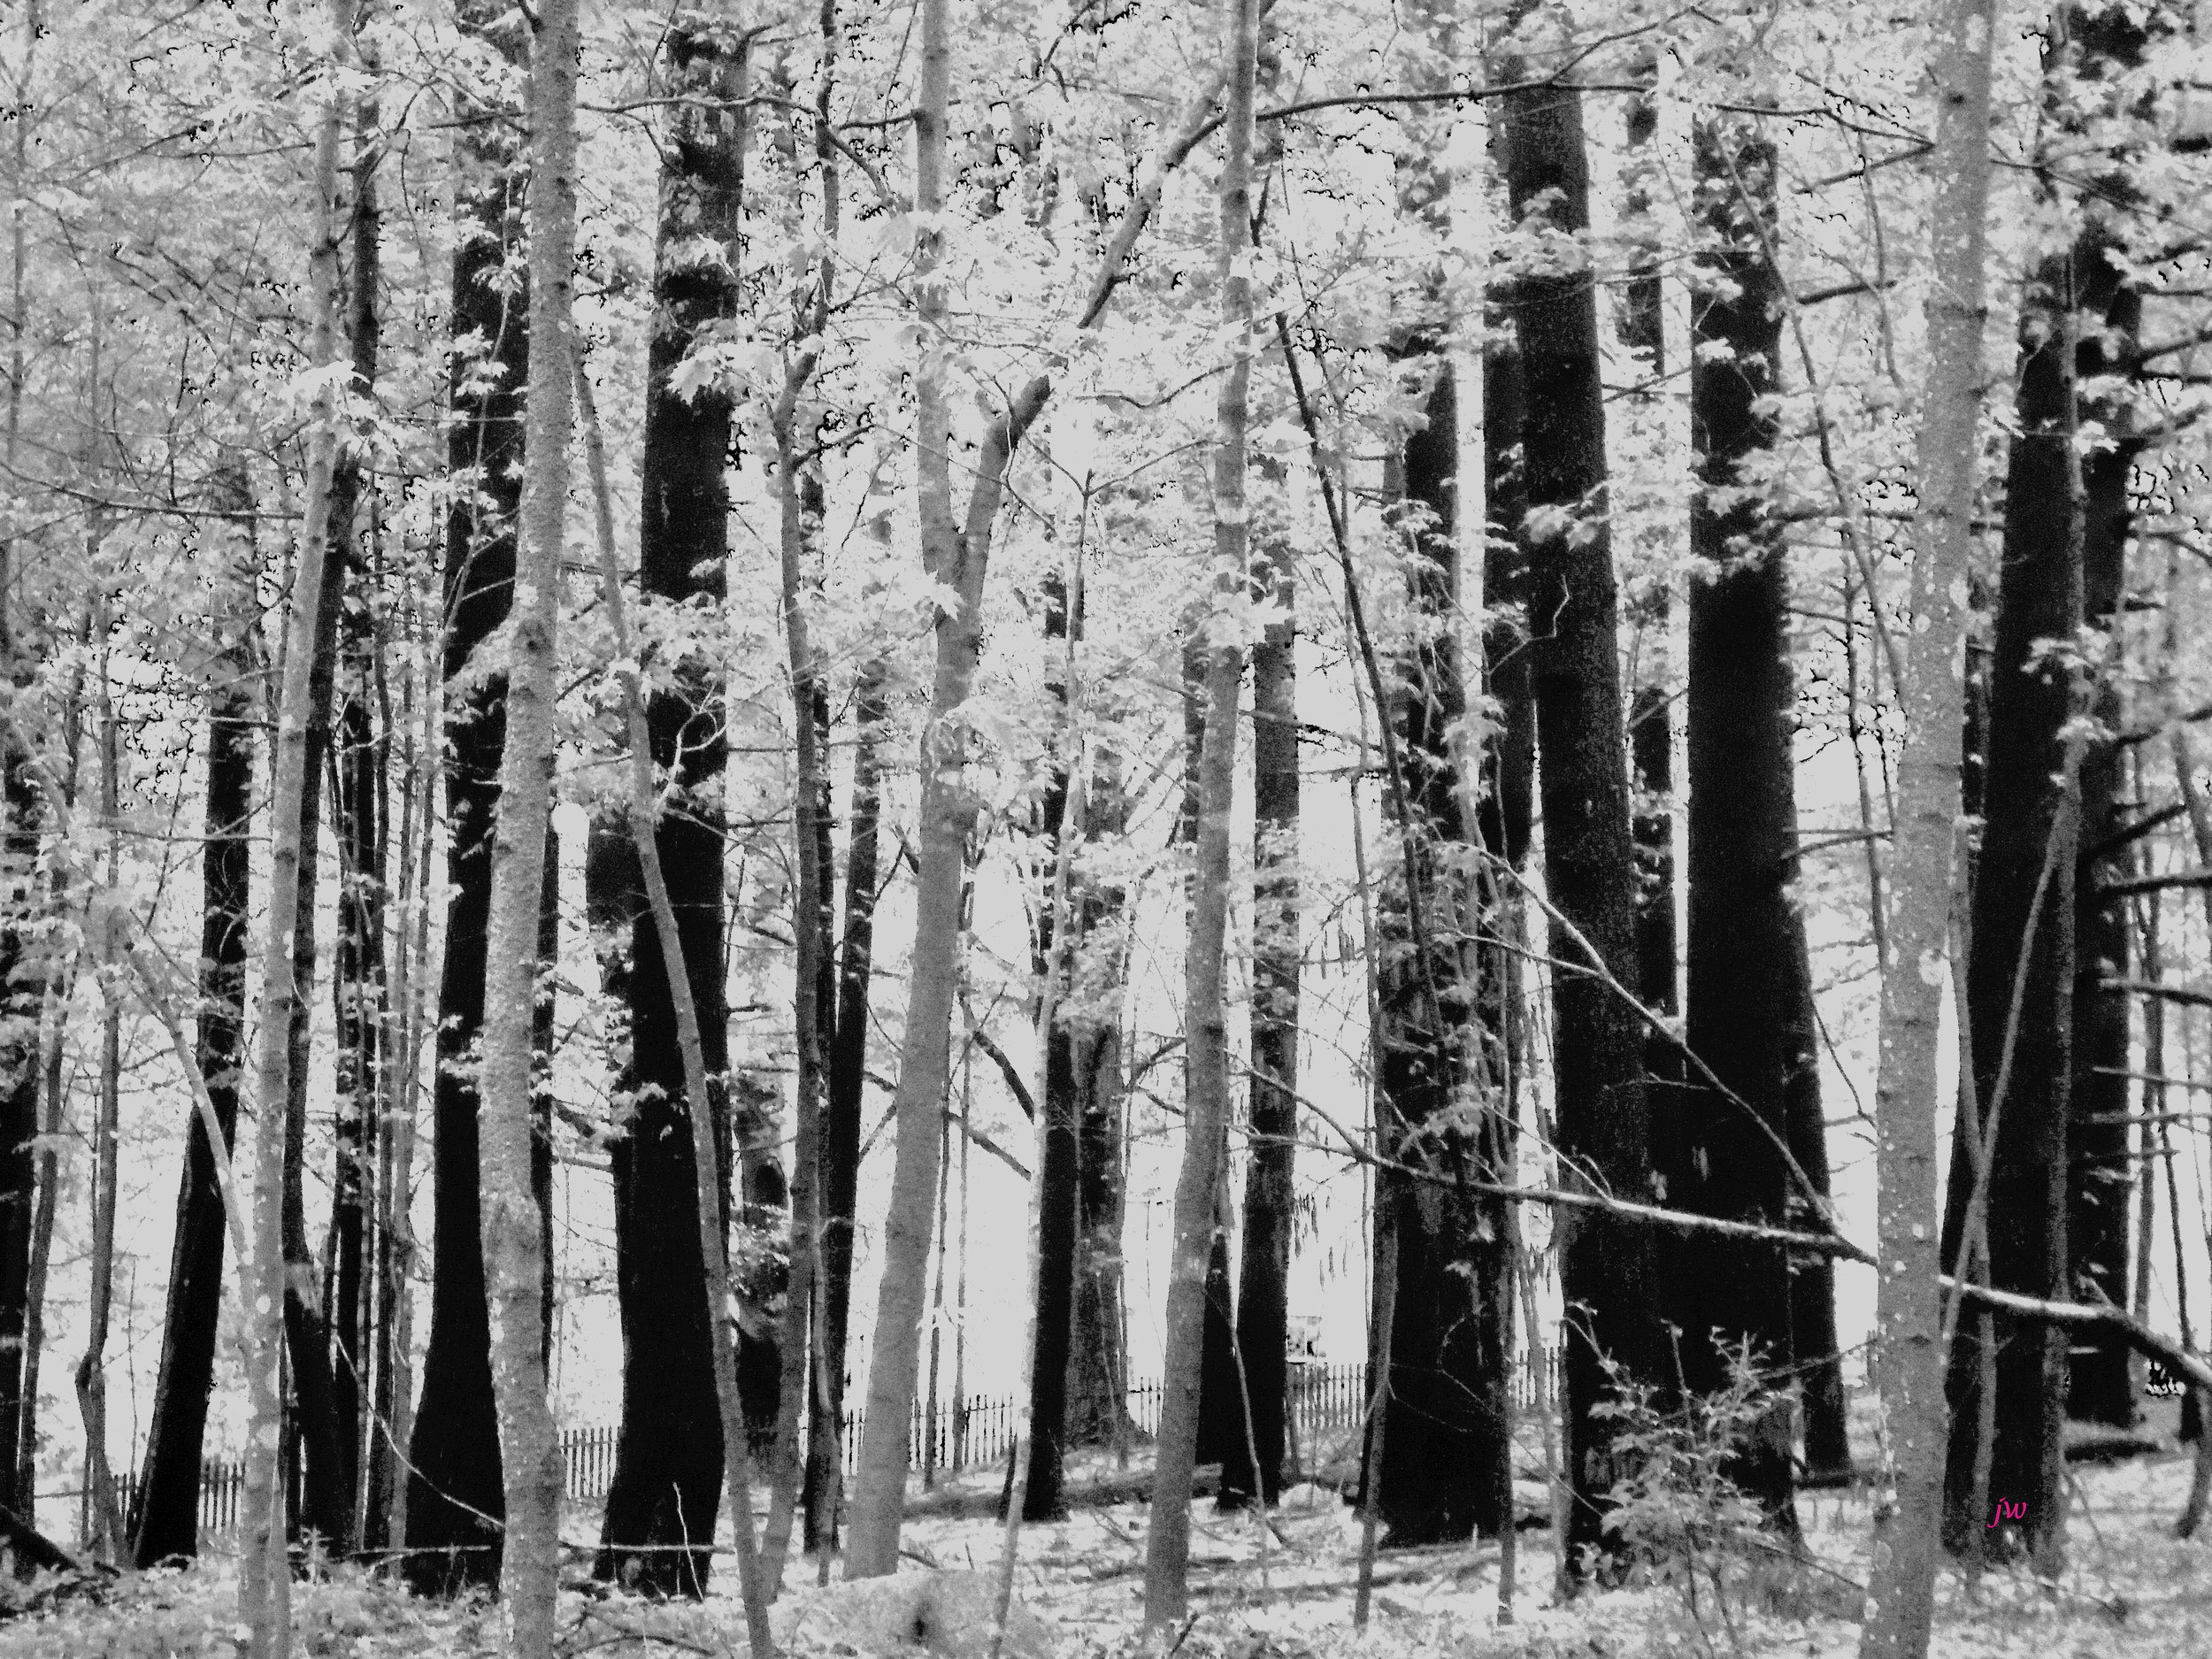 trees by the house4 b&w.jpg